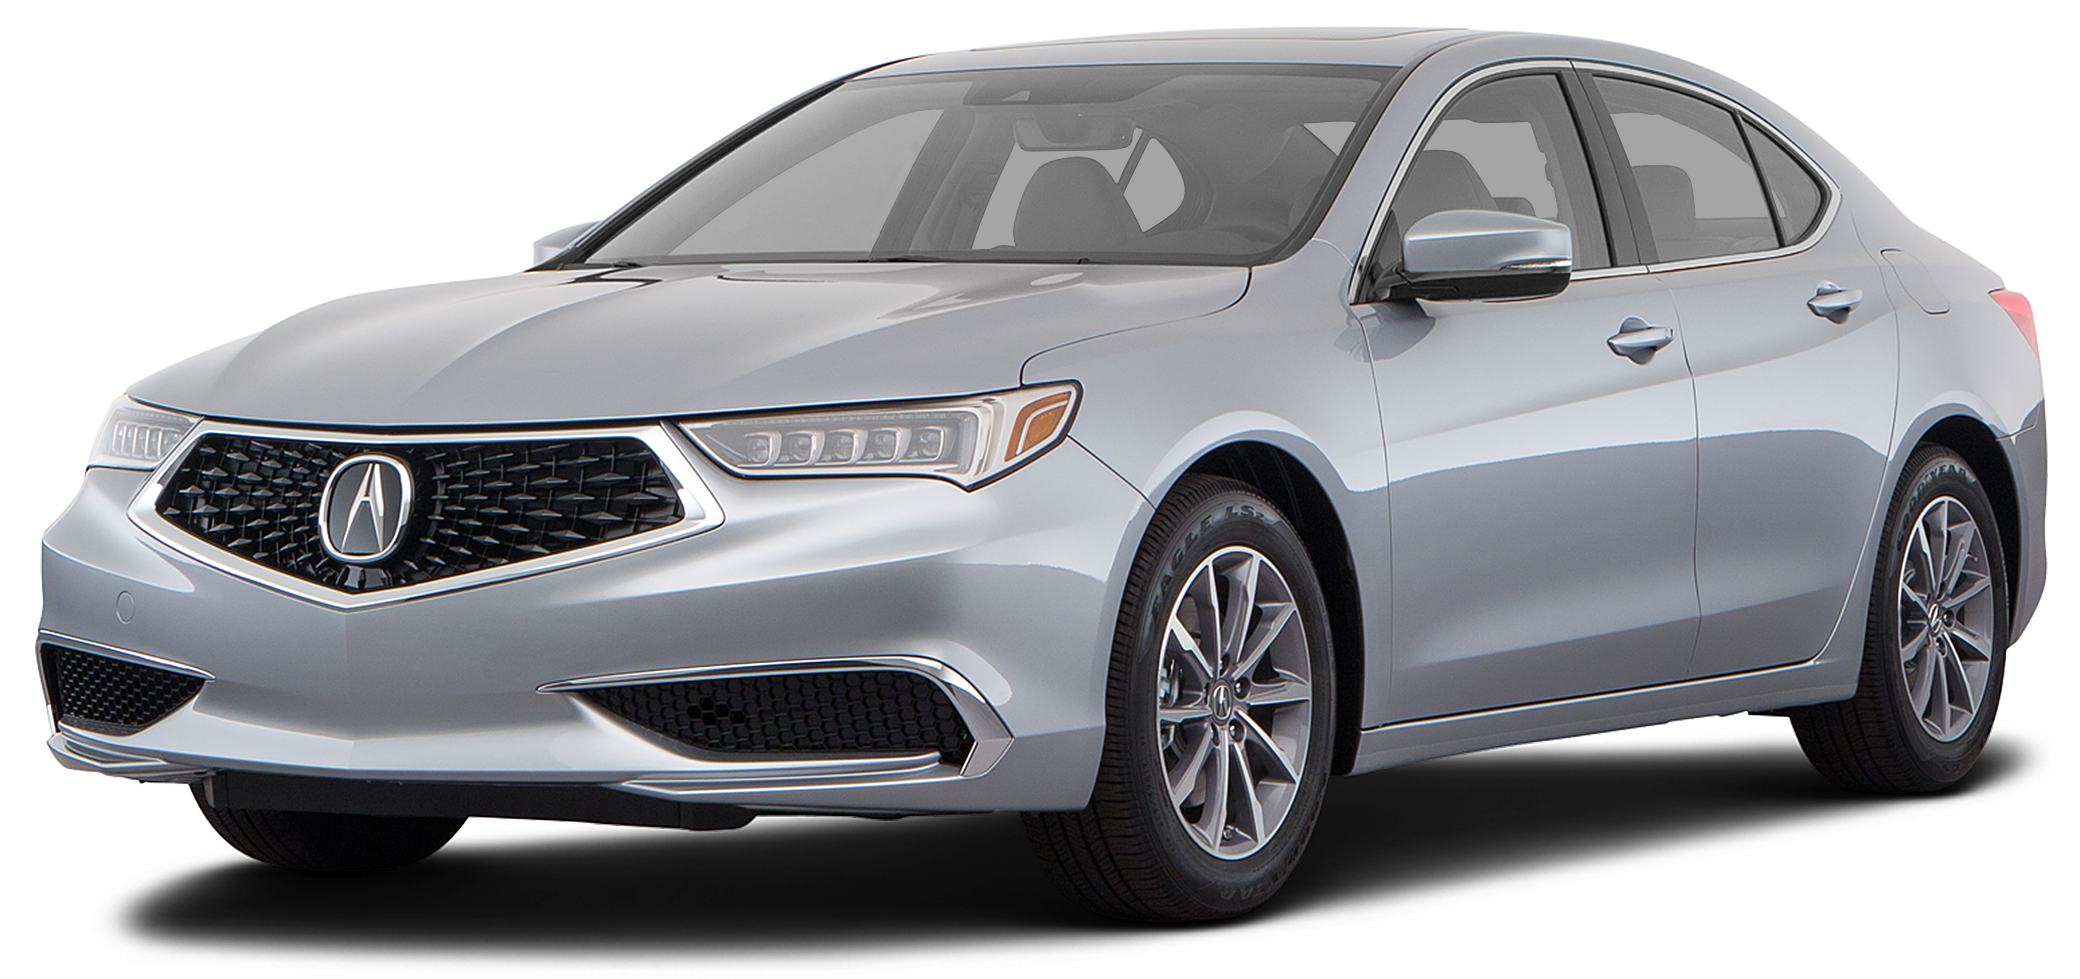 Edmonton New Used Acura Car Dealership West Side Acura: 2019 Acura TLX Incentives, Specials & Offers In Edmonton AB